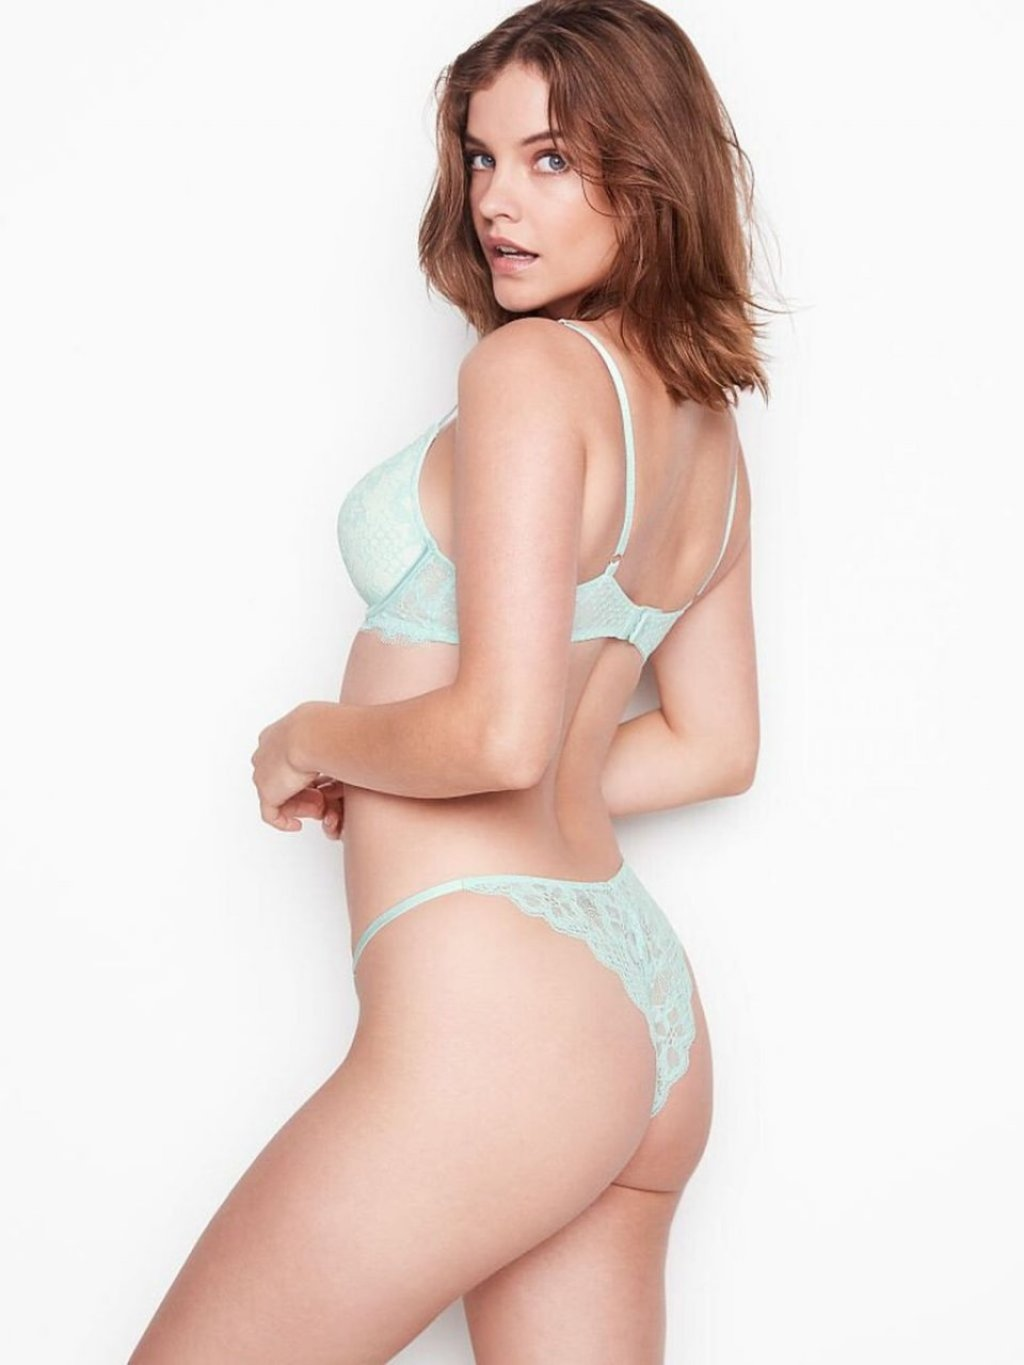 Barbara Palvin Sexy (69 Photos)